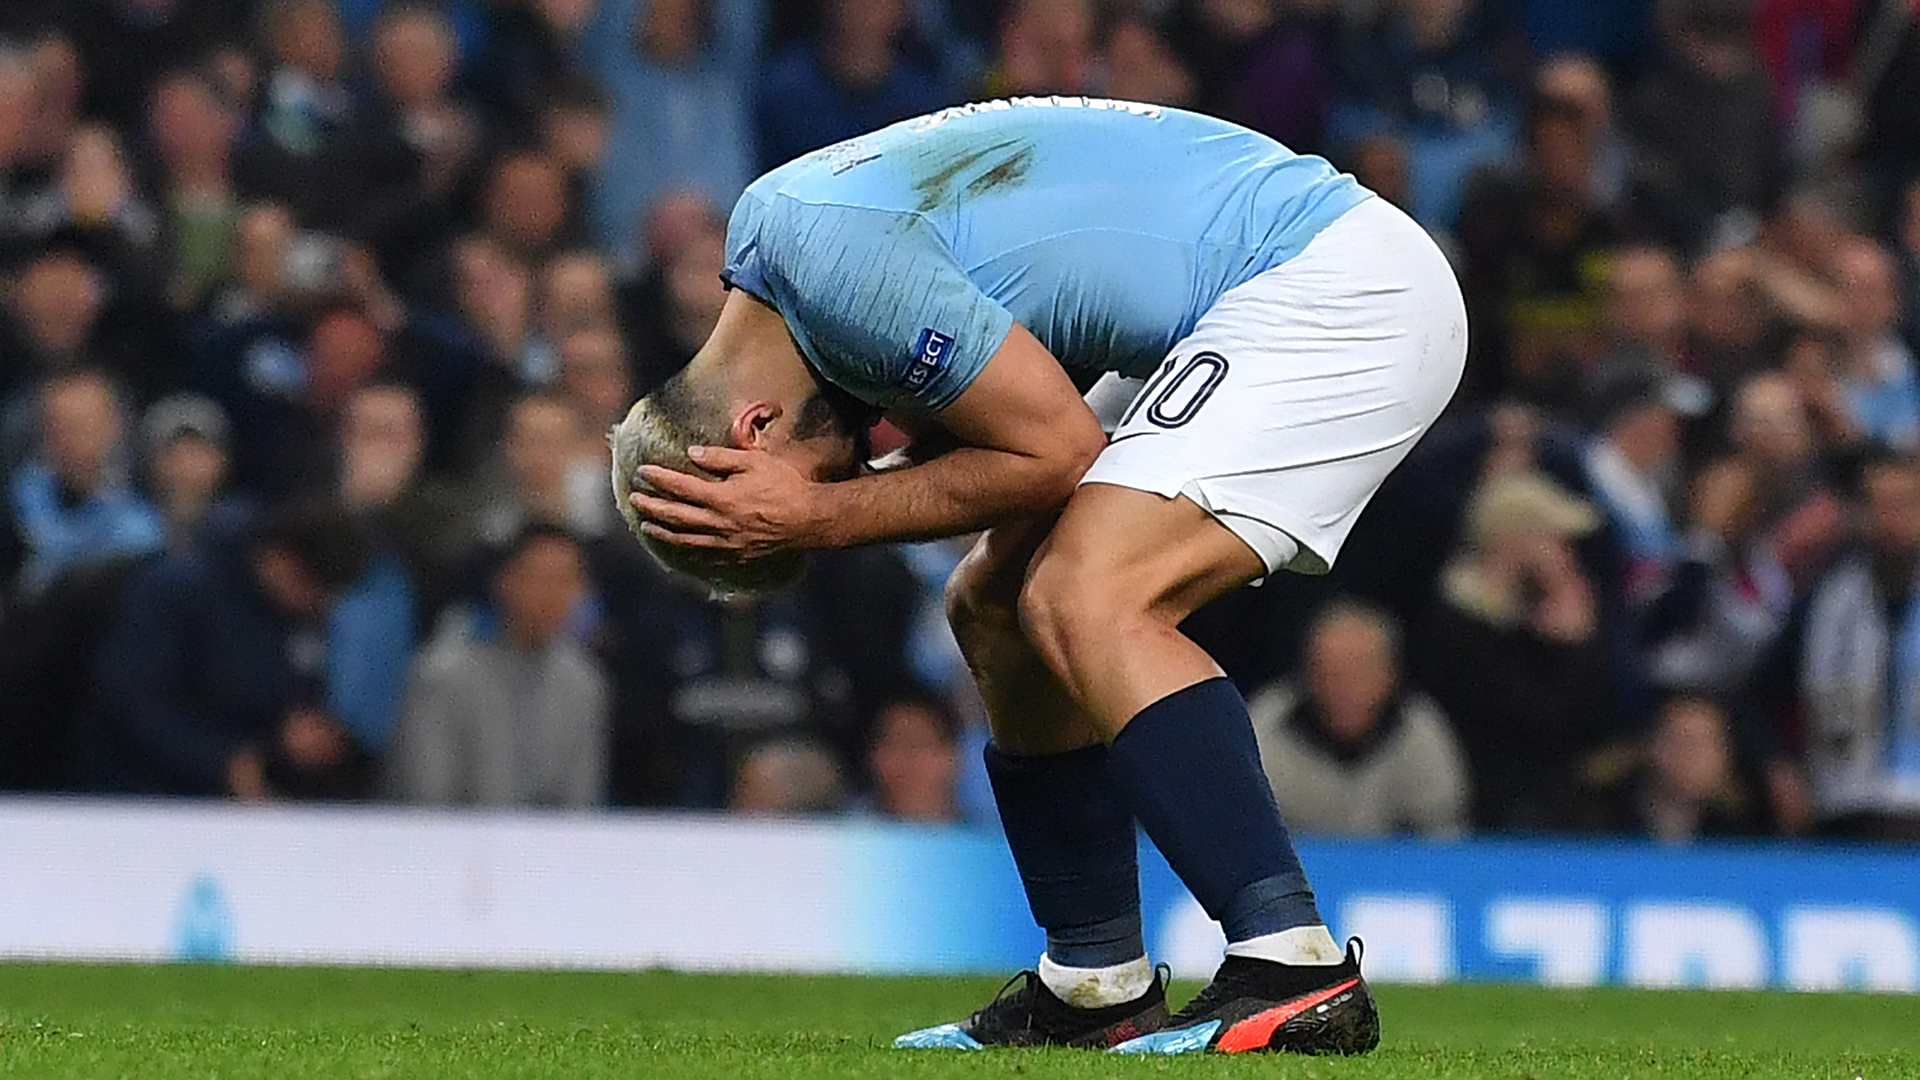 Tottenham fans react to late drama against Manchester City on Twitter